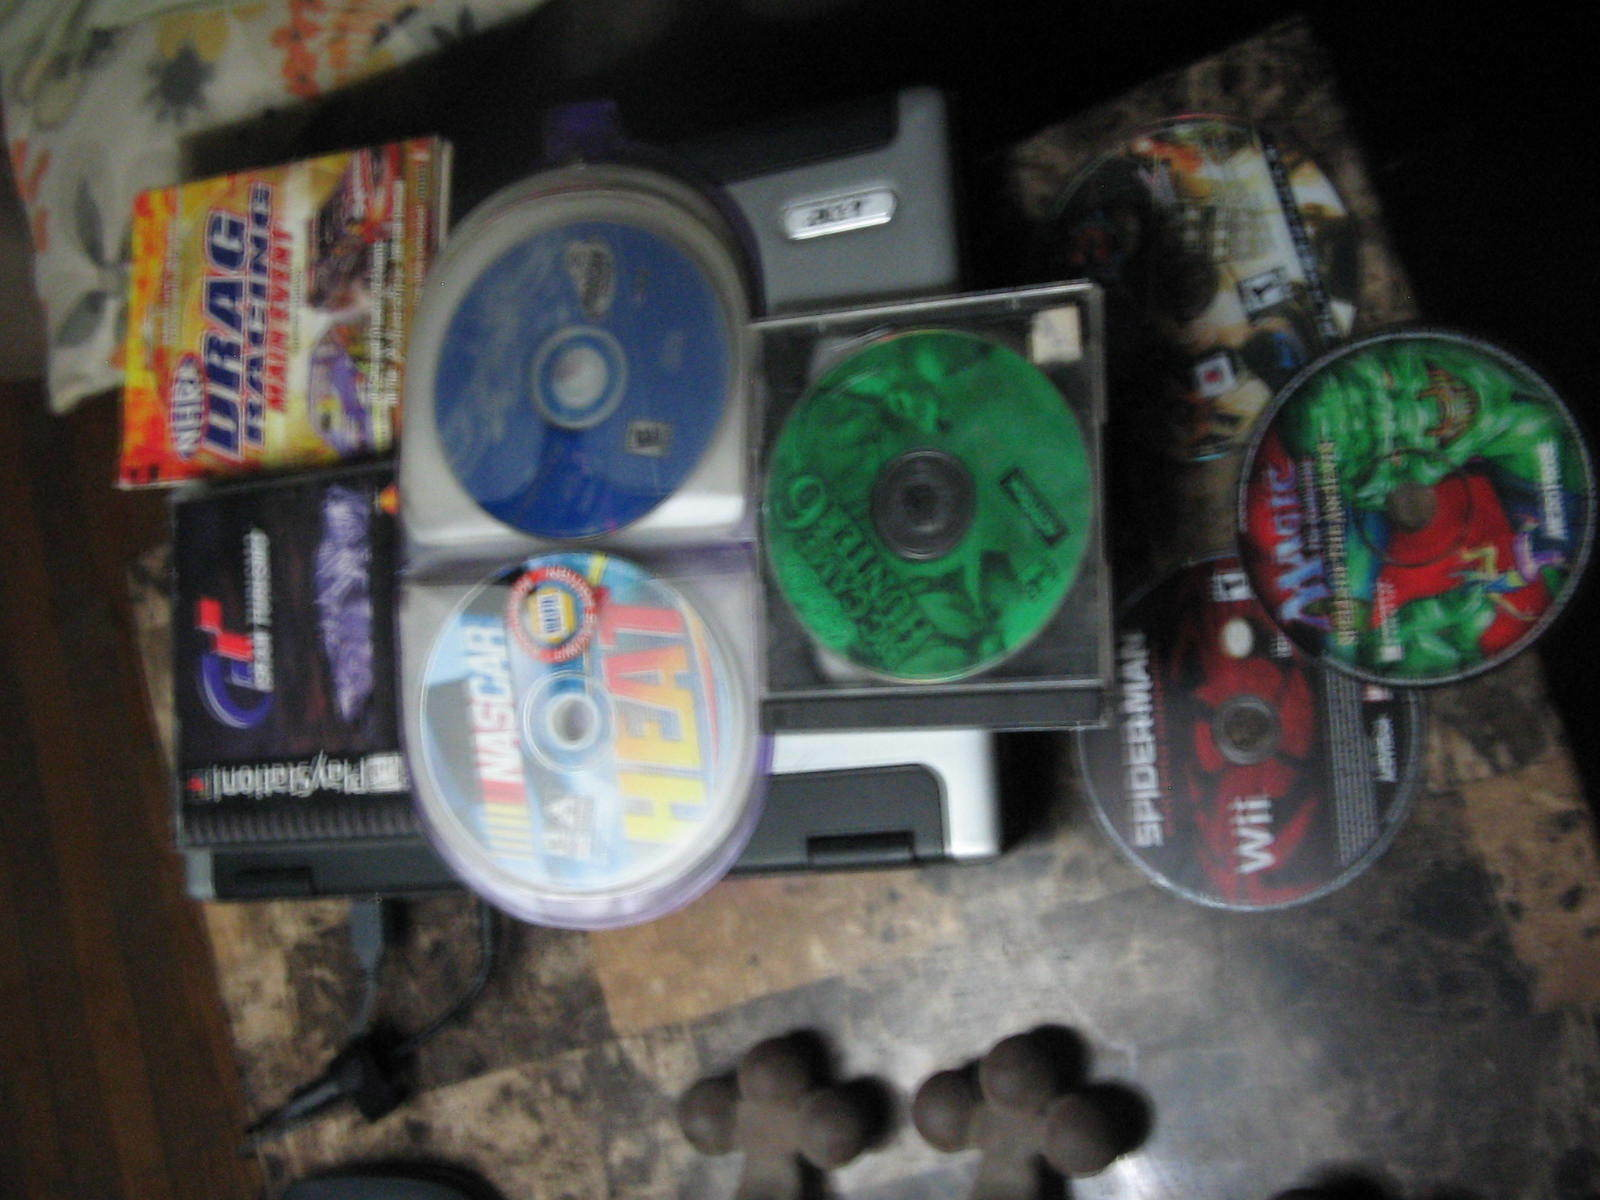 Computer Games - Computer games/playstation/Wii /EA Sports computer/others